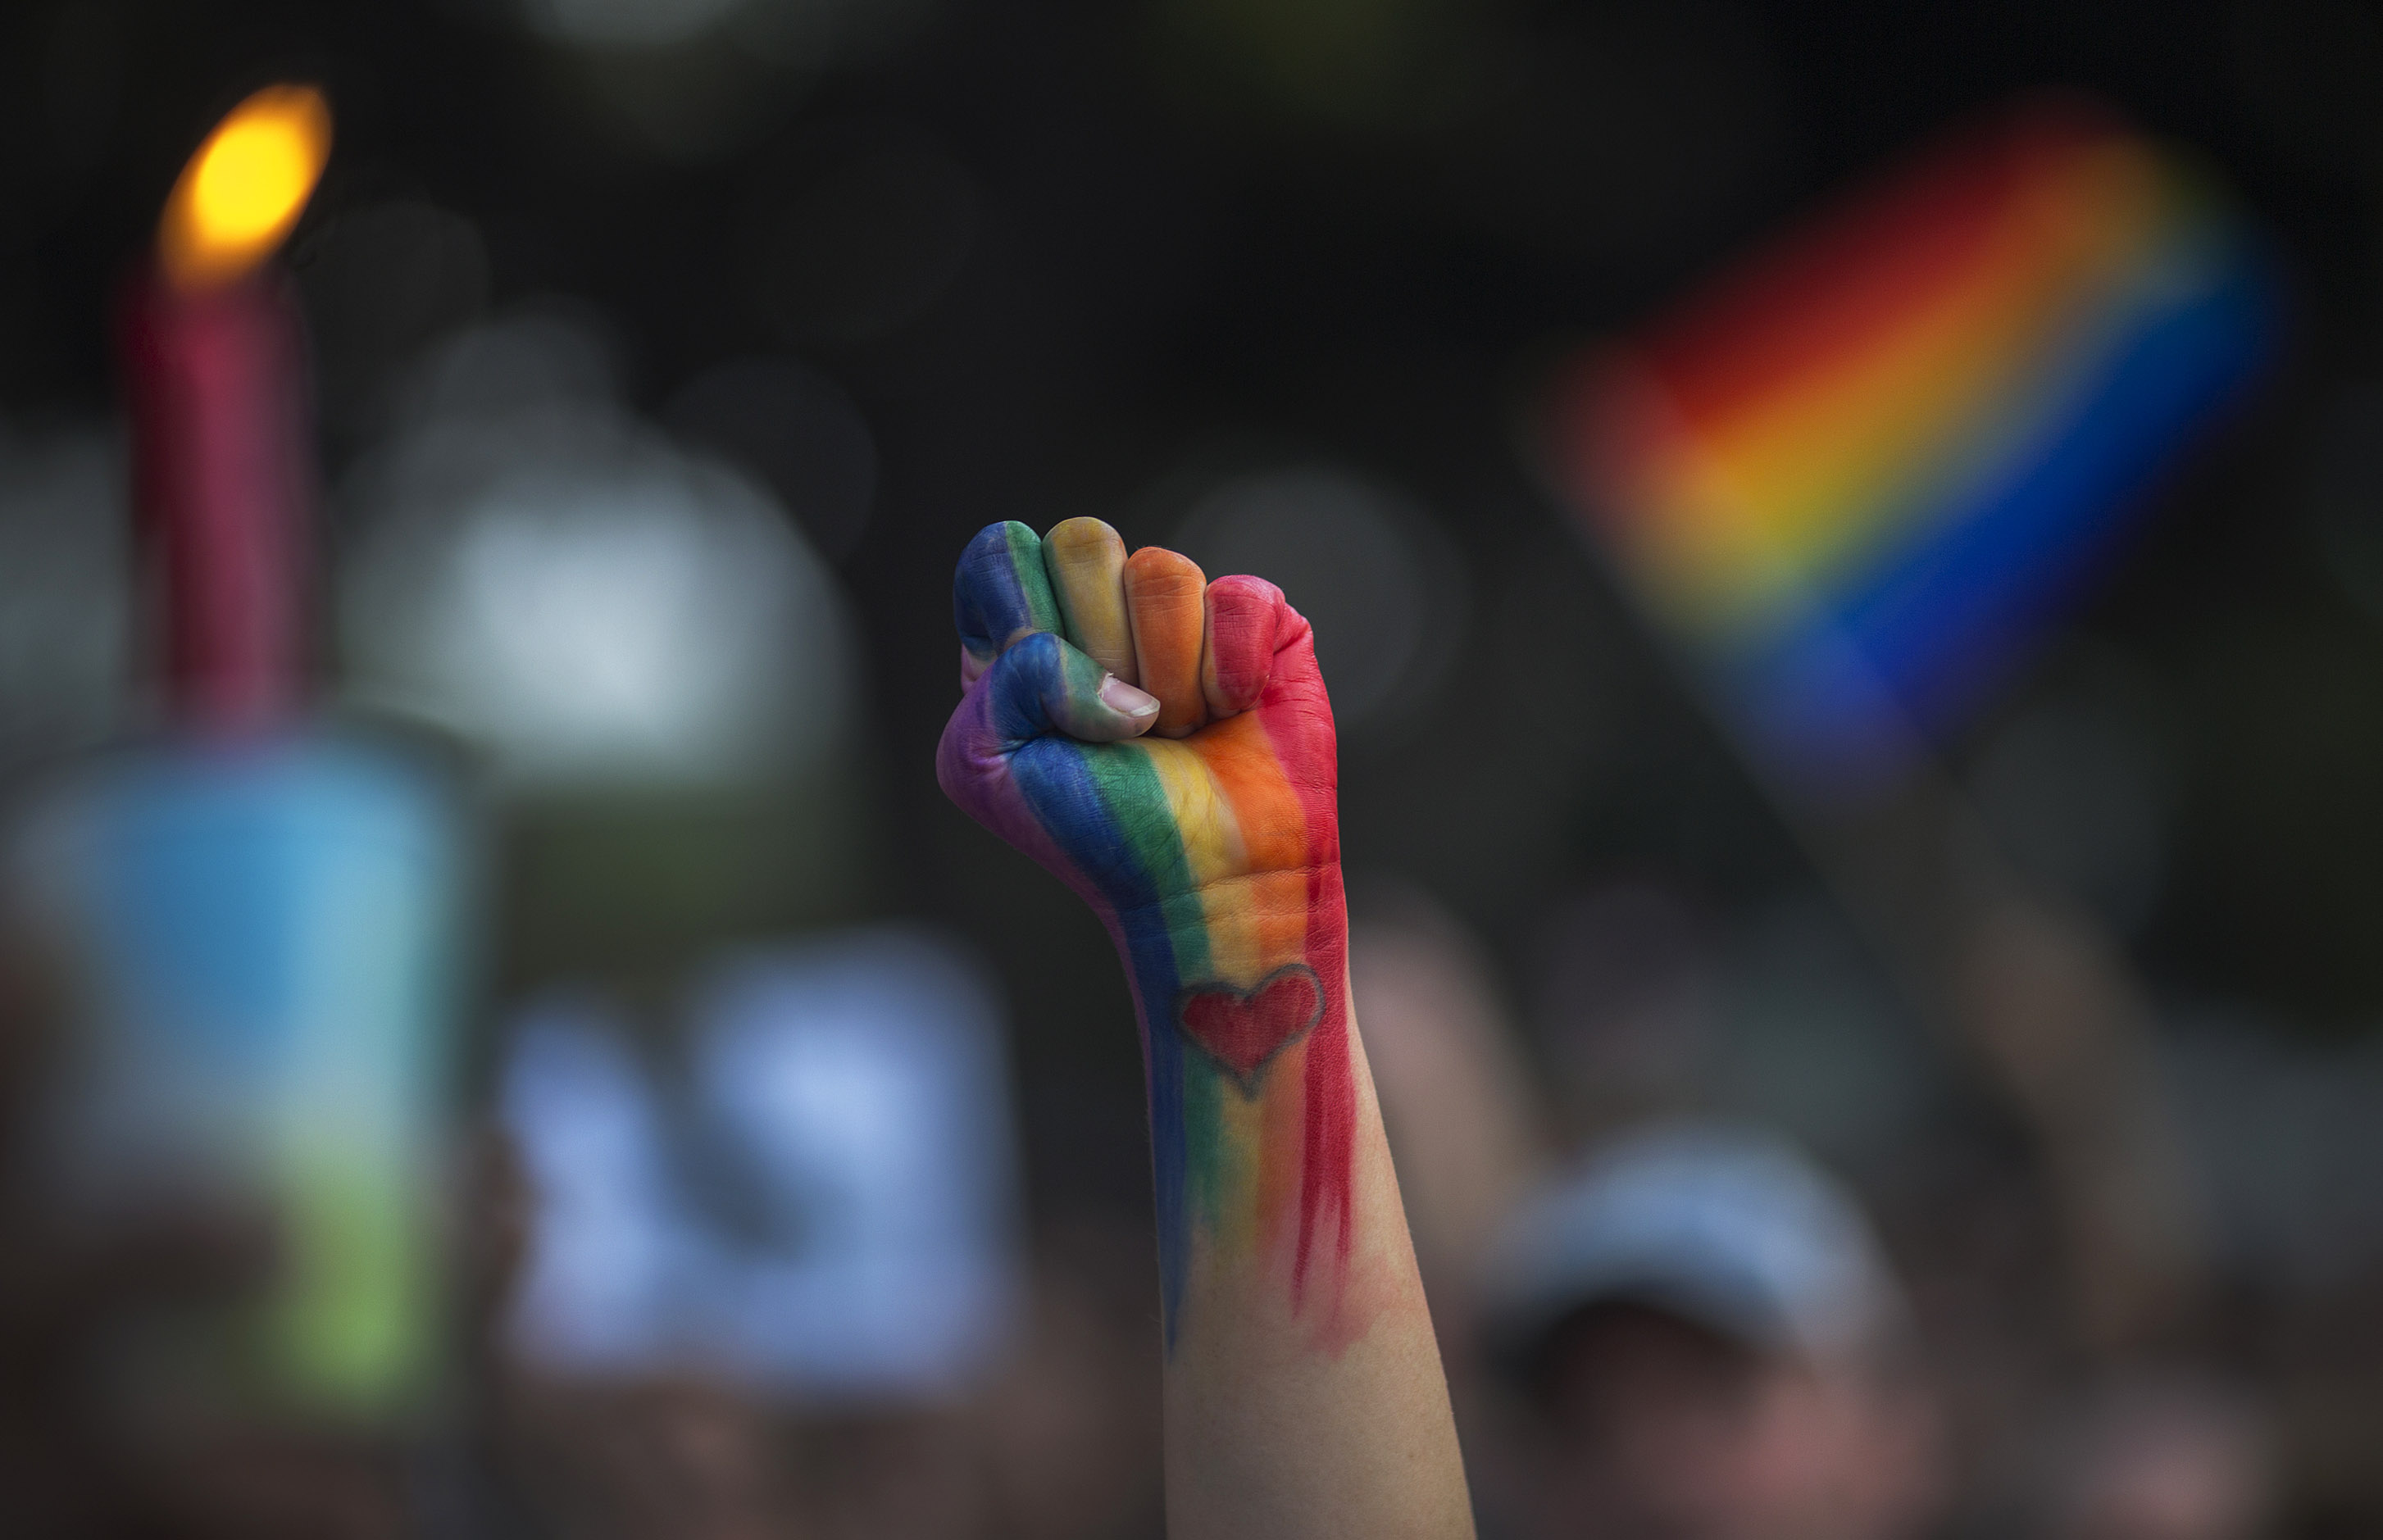 10 organizations that help LGBTQ youth that are seriously important and need donations now